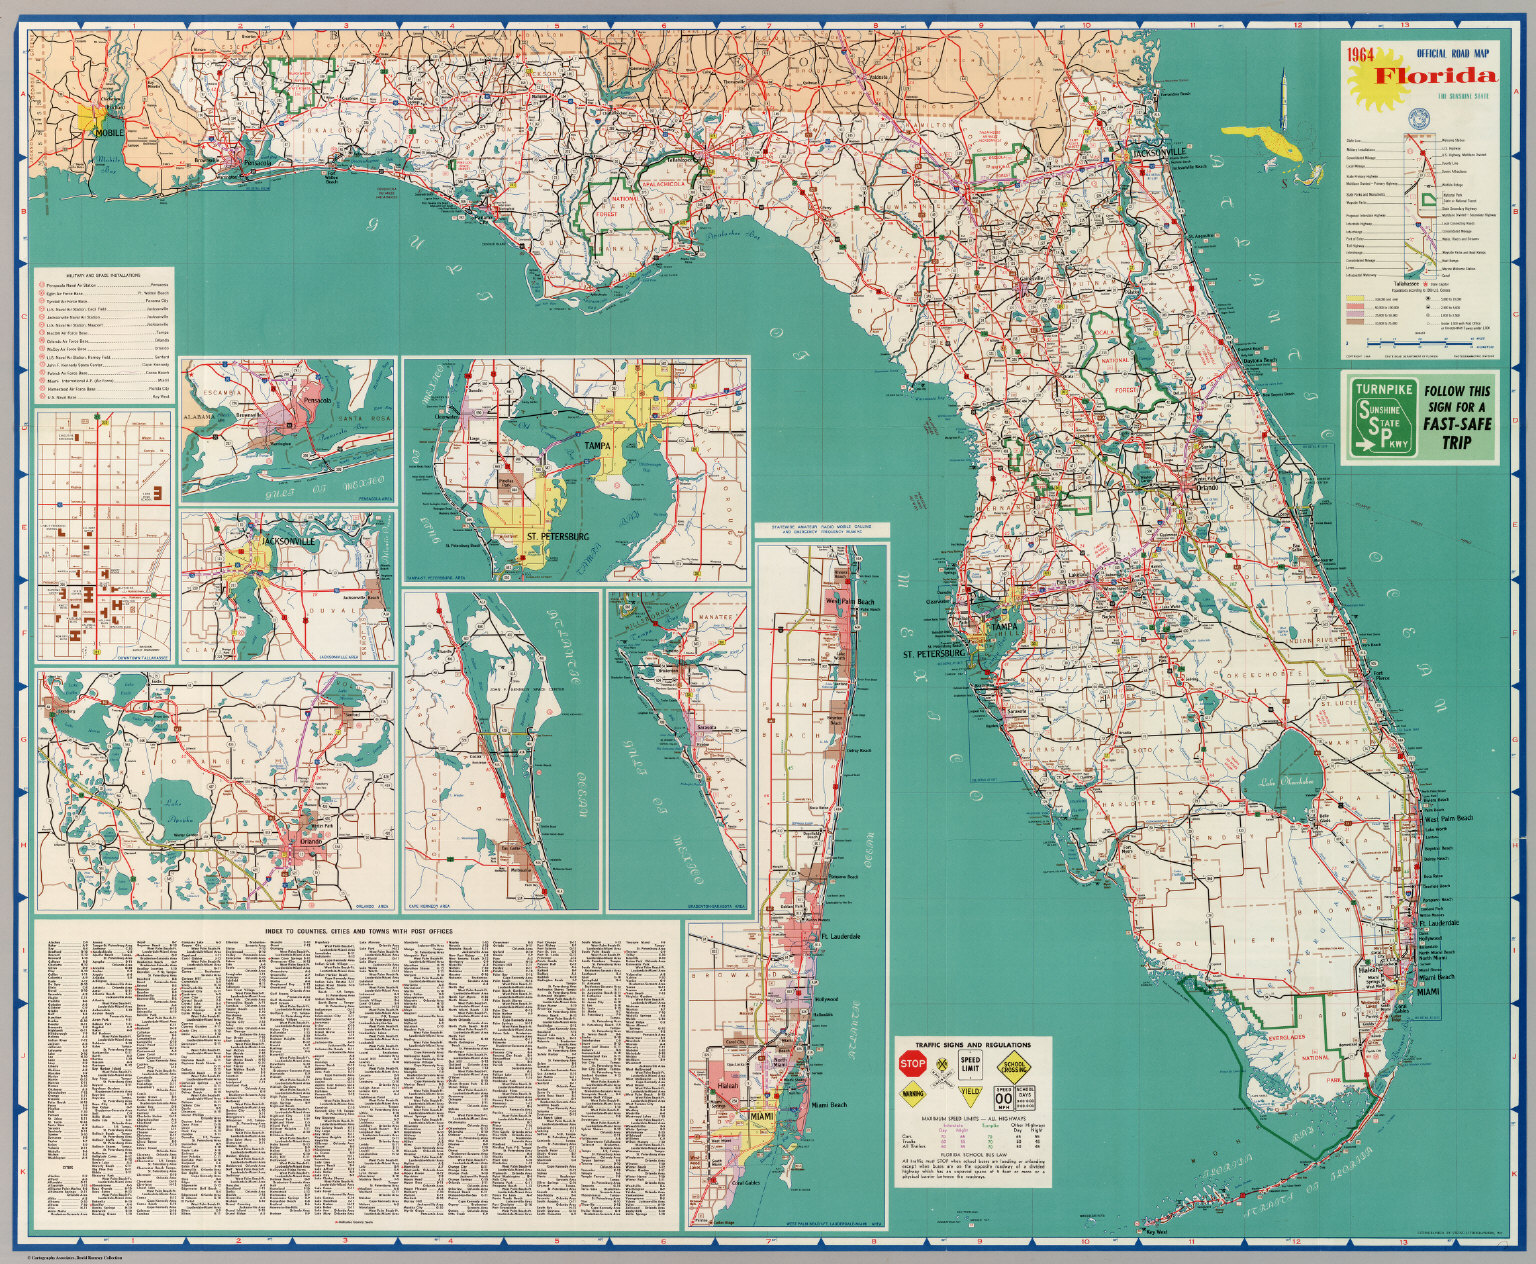 Official Road Map Florida The Sunshine State David Rumsey - Florida map state